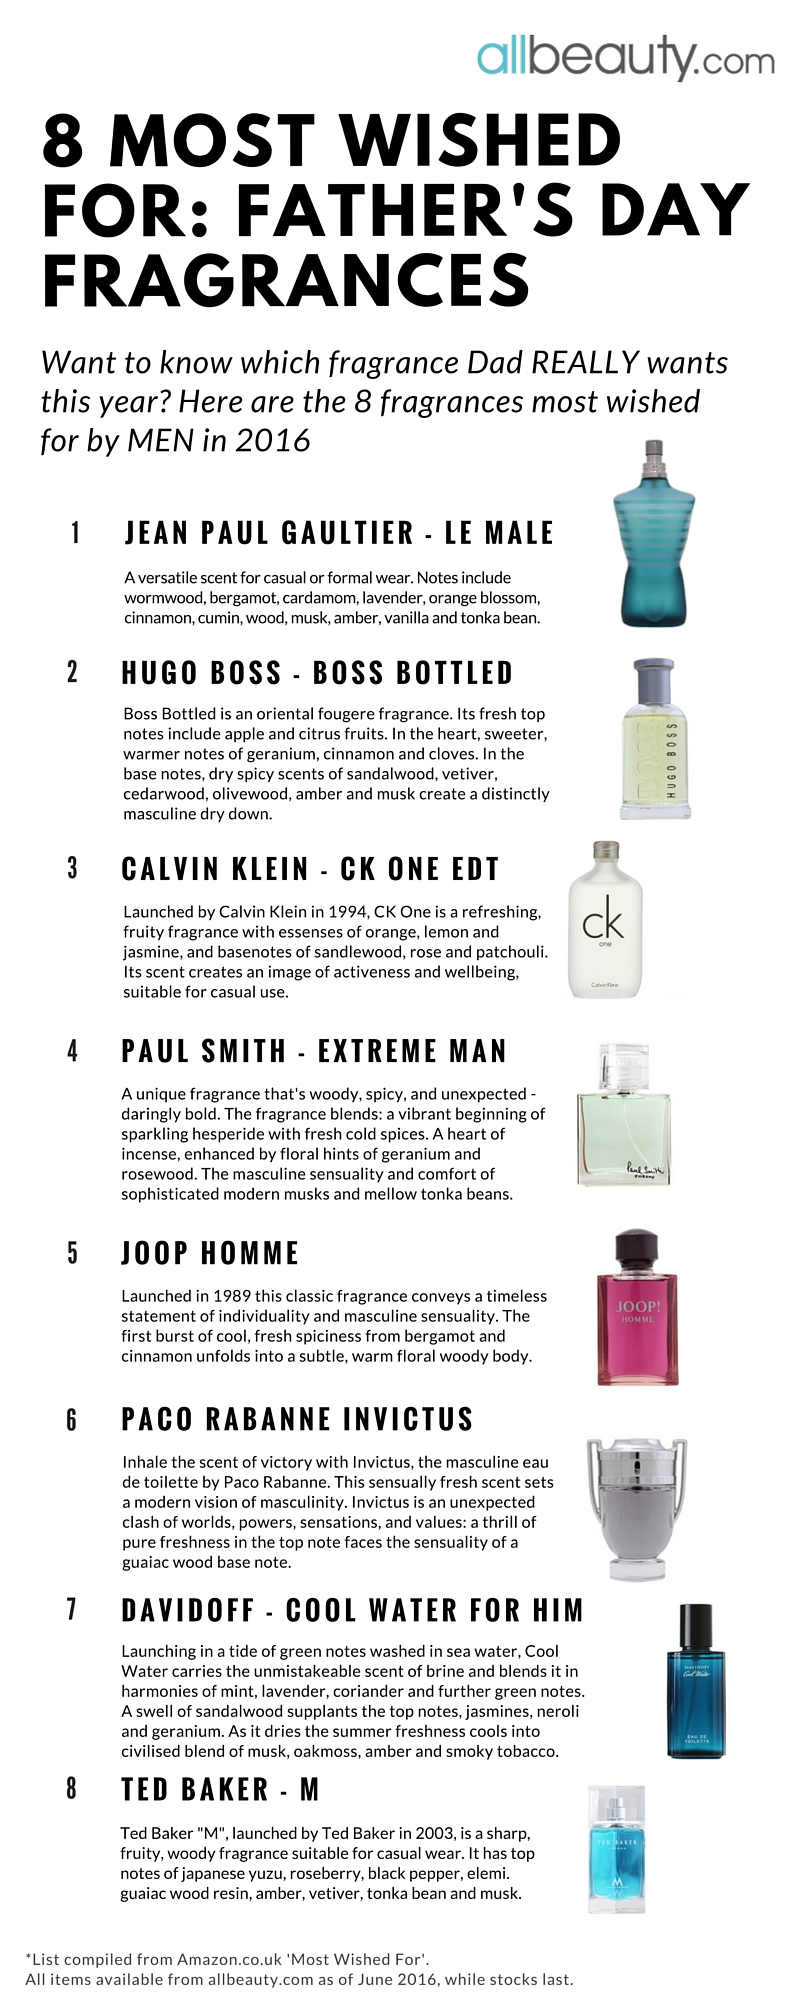 8 Most Wished For Father's Day Fragrances